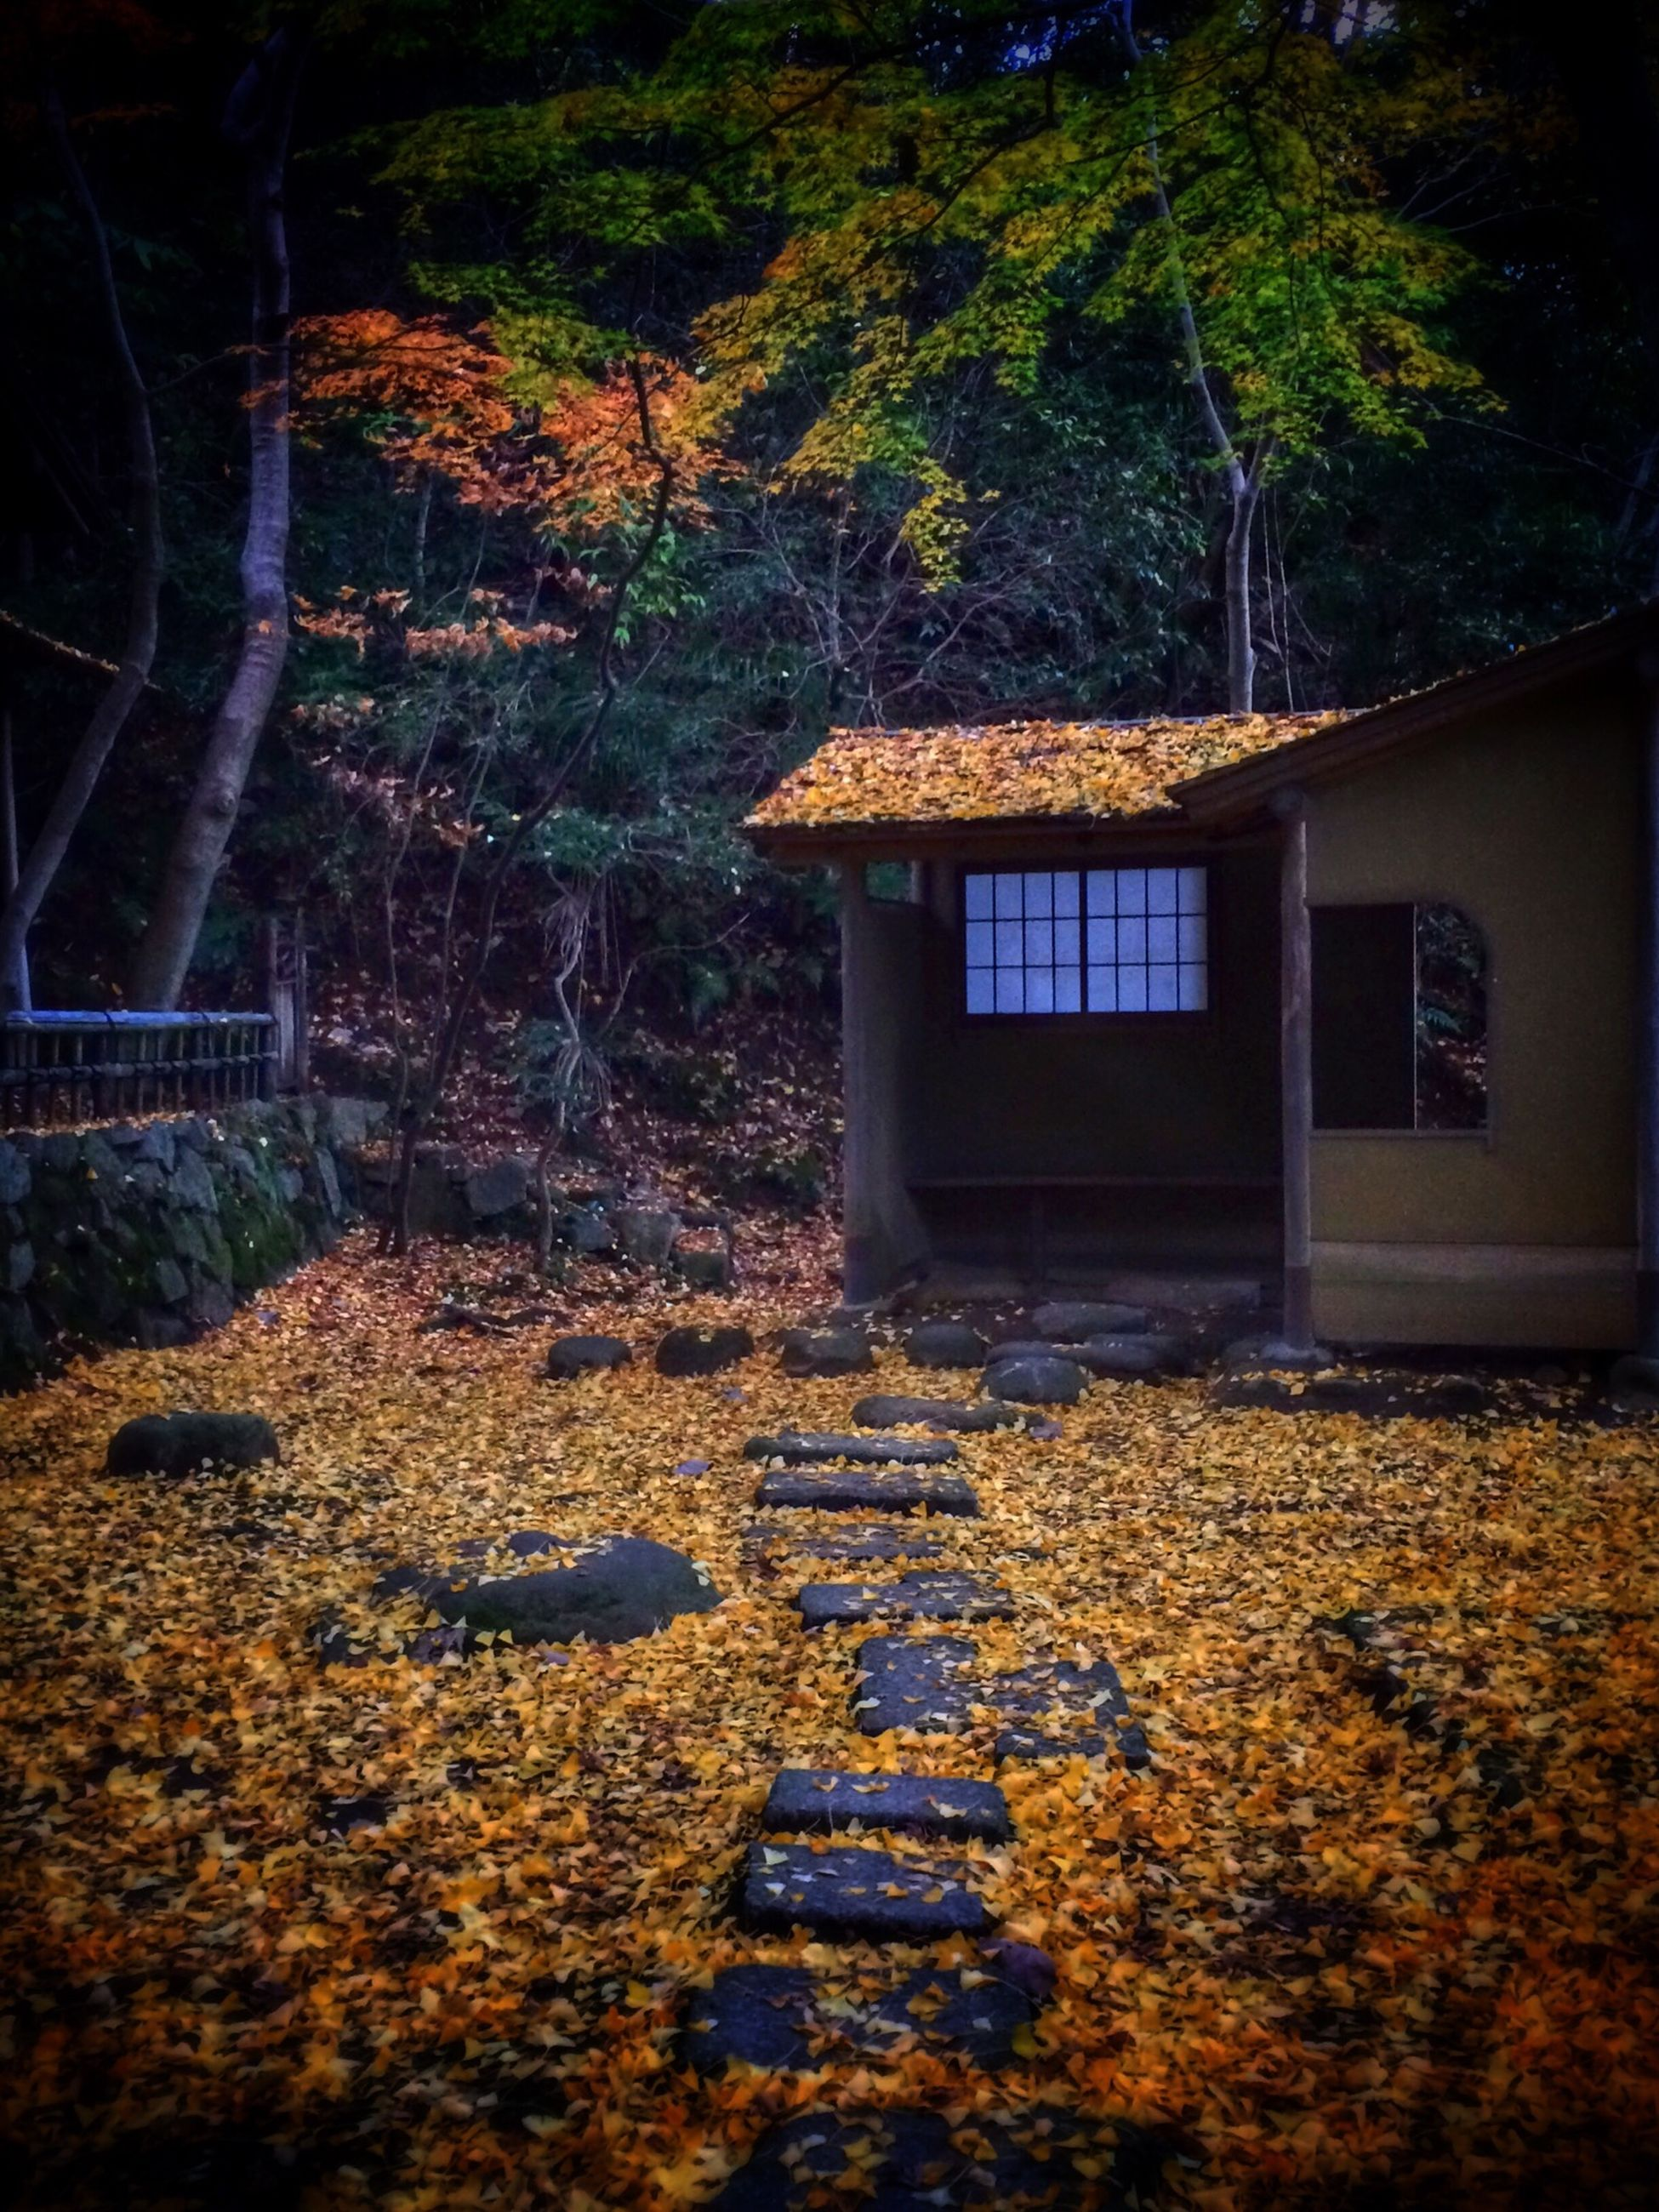 tree, built structure, architecture, building exterior, autumn, house, growth, change, plant, yellow, season, outdoors, nature, leaf, dry, day, no people, fallen, illuminated